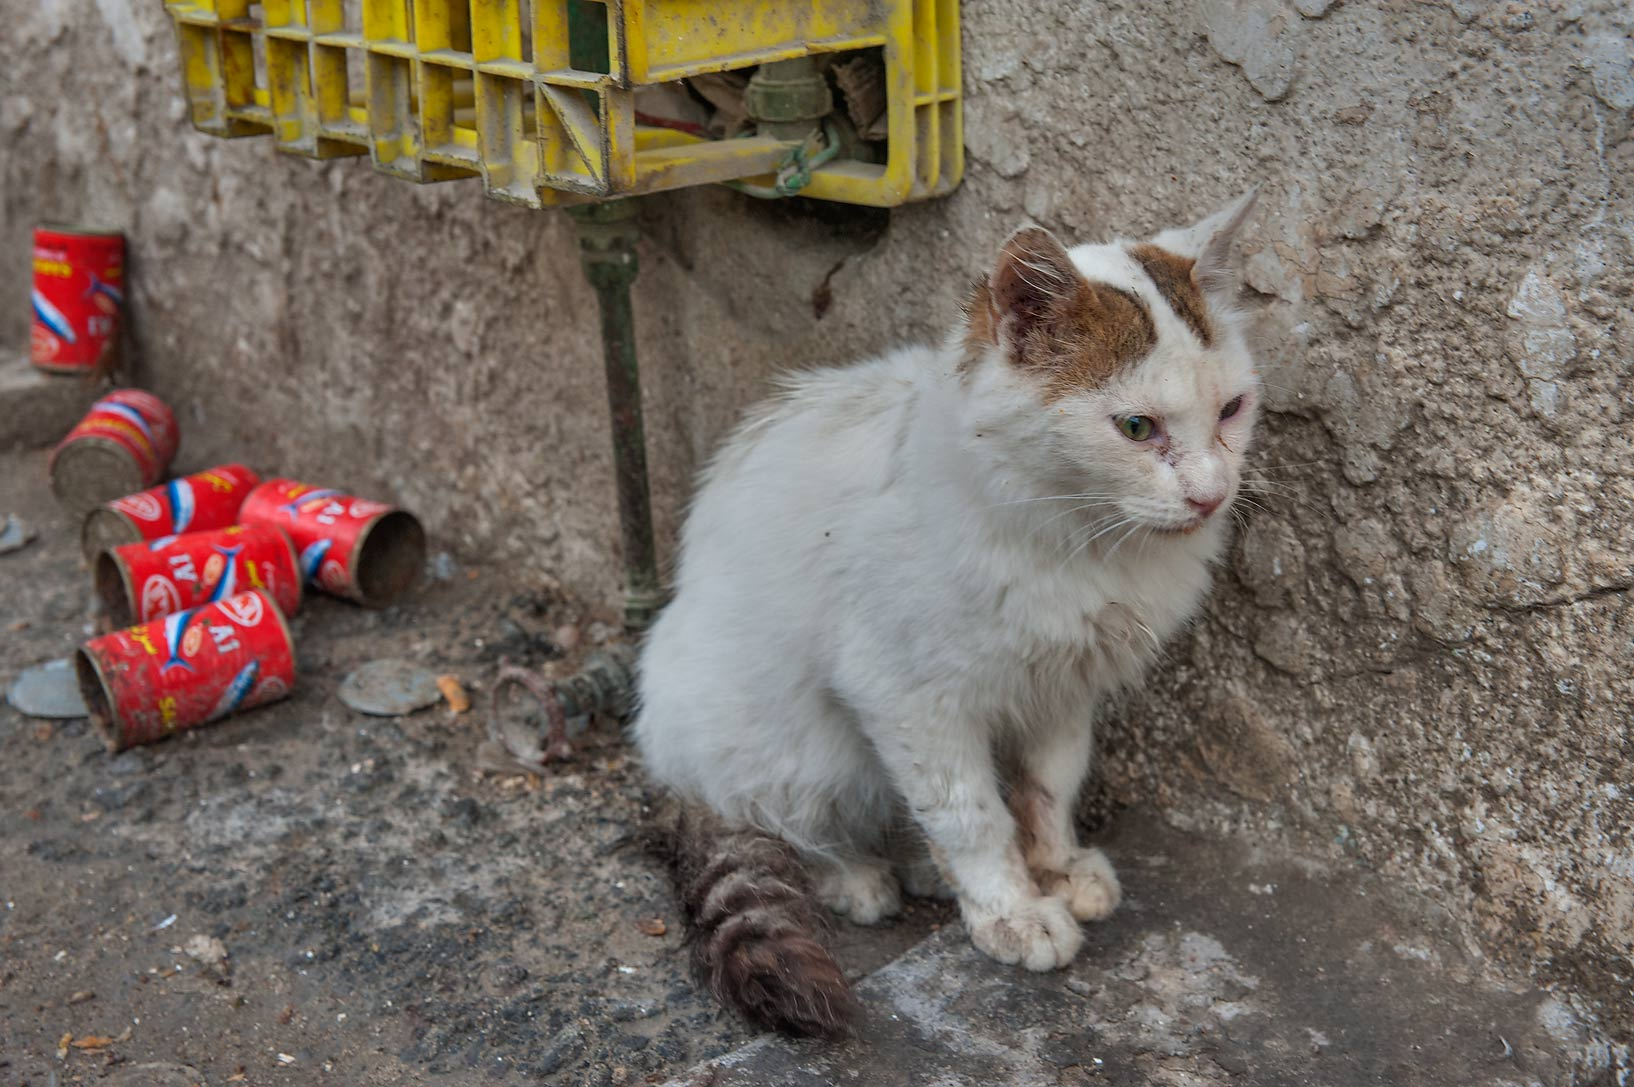 Cat after eating canned fish on Umm Wishad St., in Musheirib area. Doha, Qatar